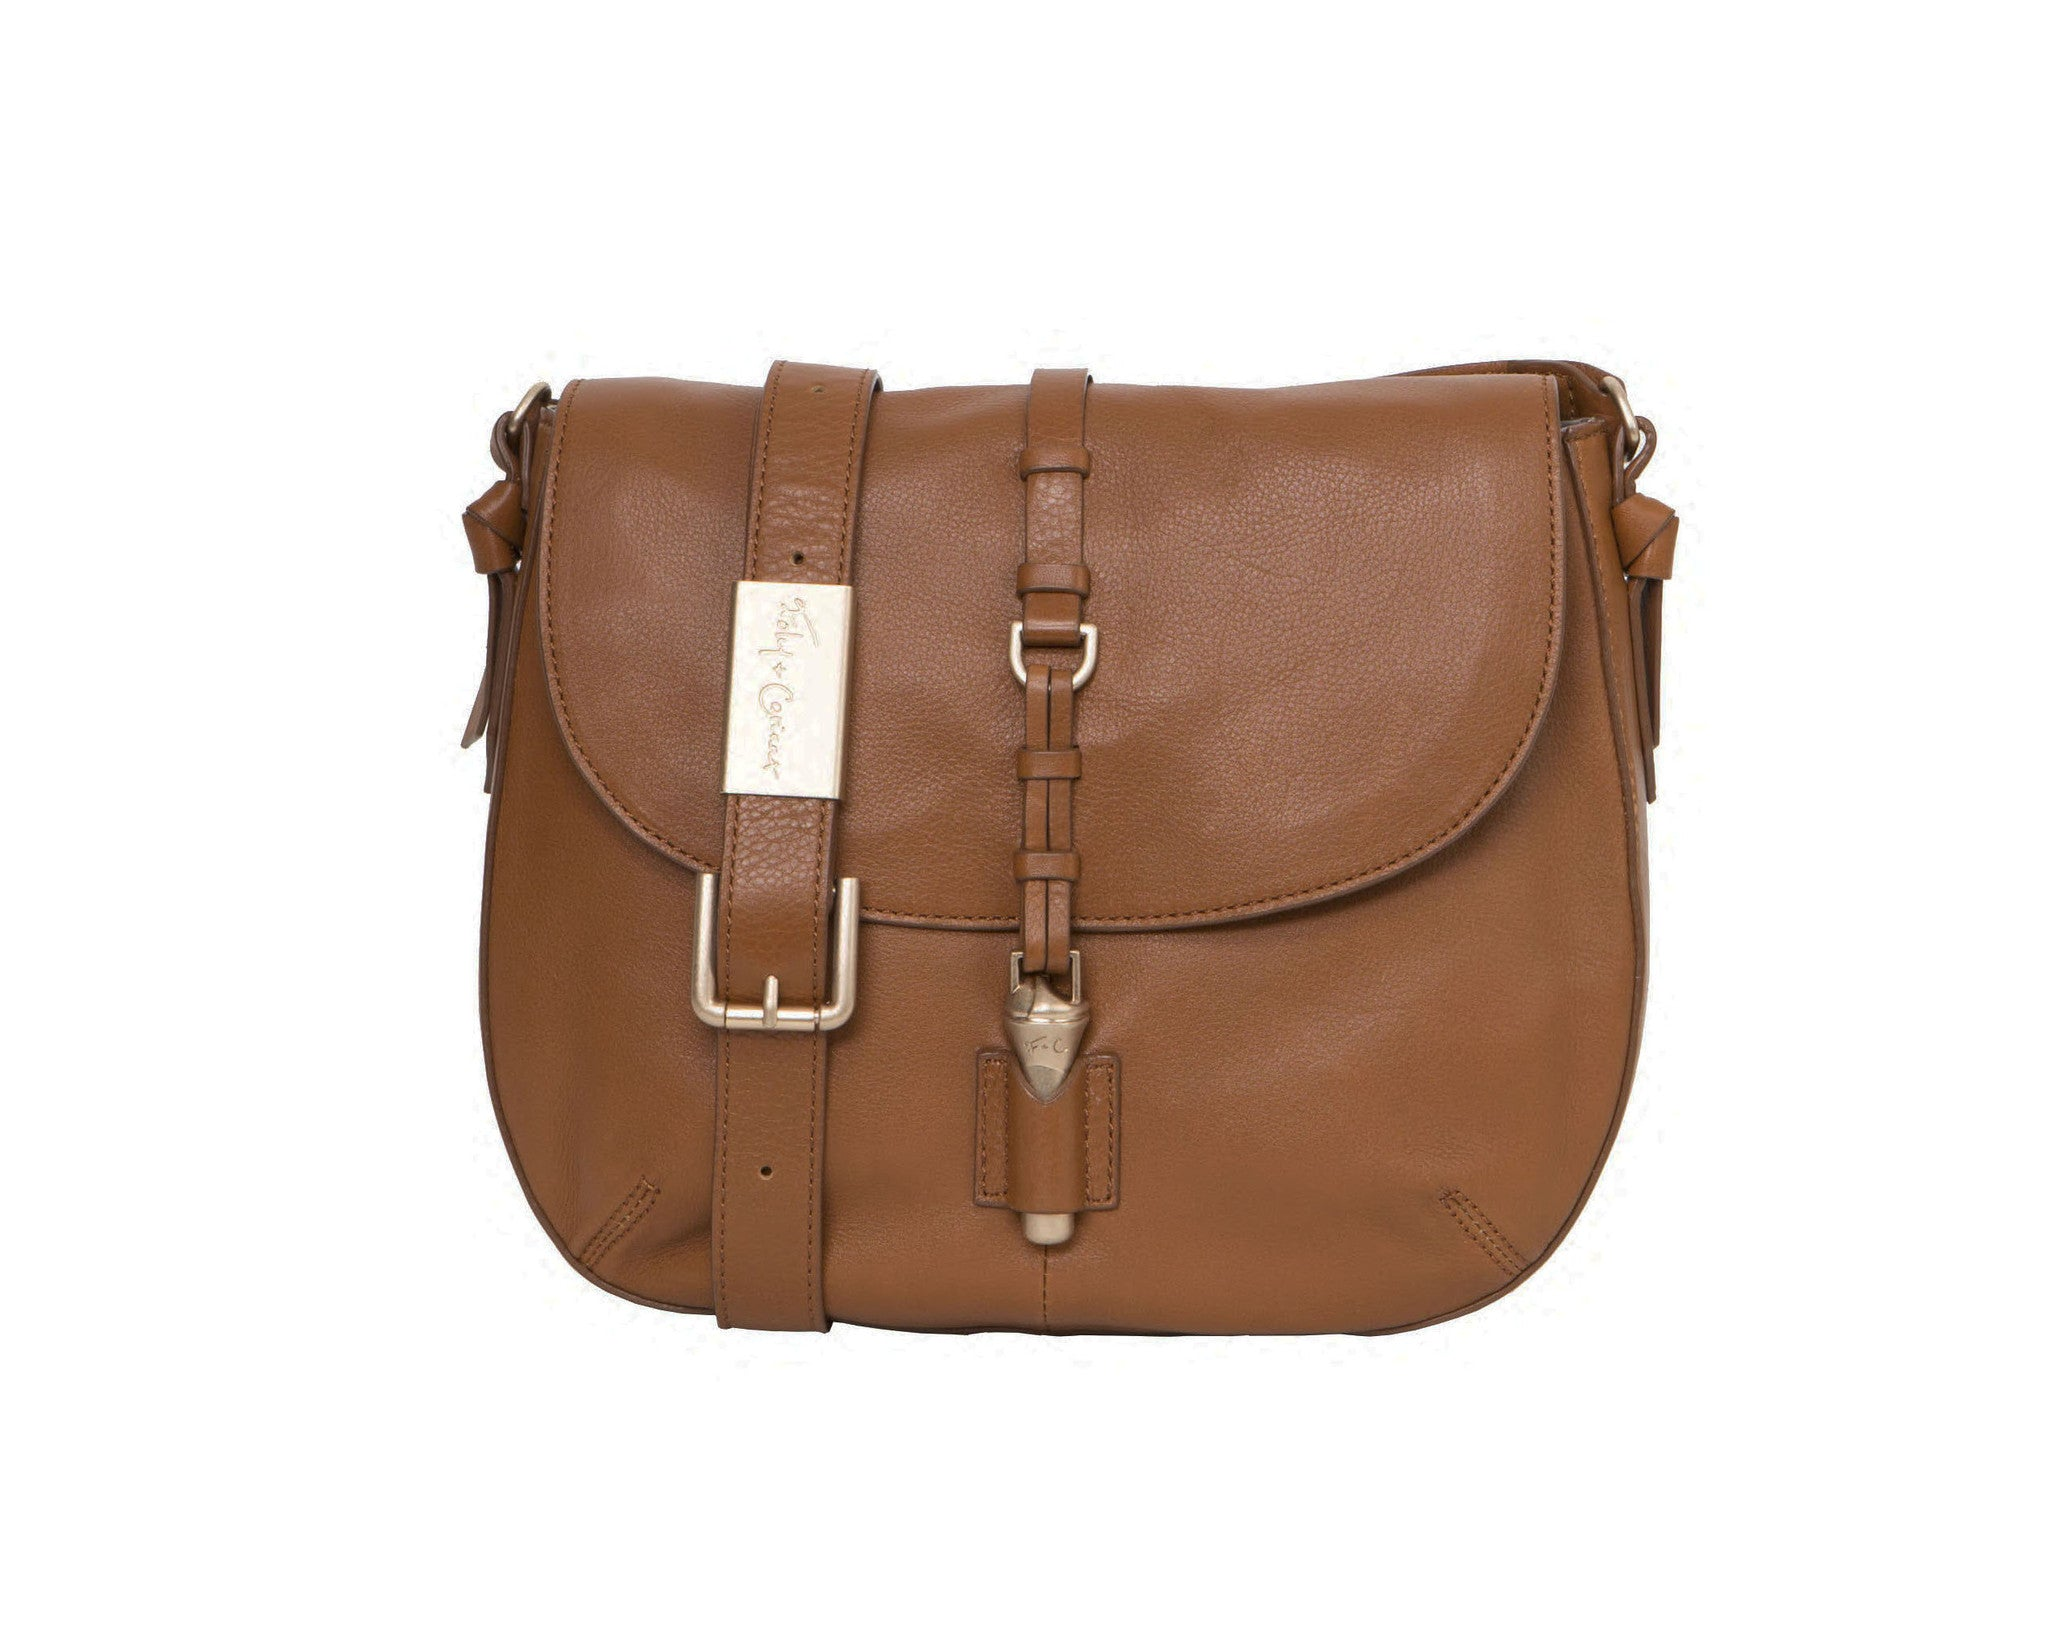 LEA SADDLE BAG IN HONEY BROWN